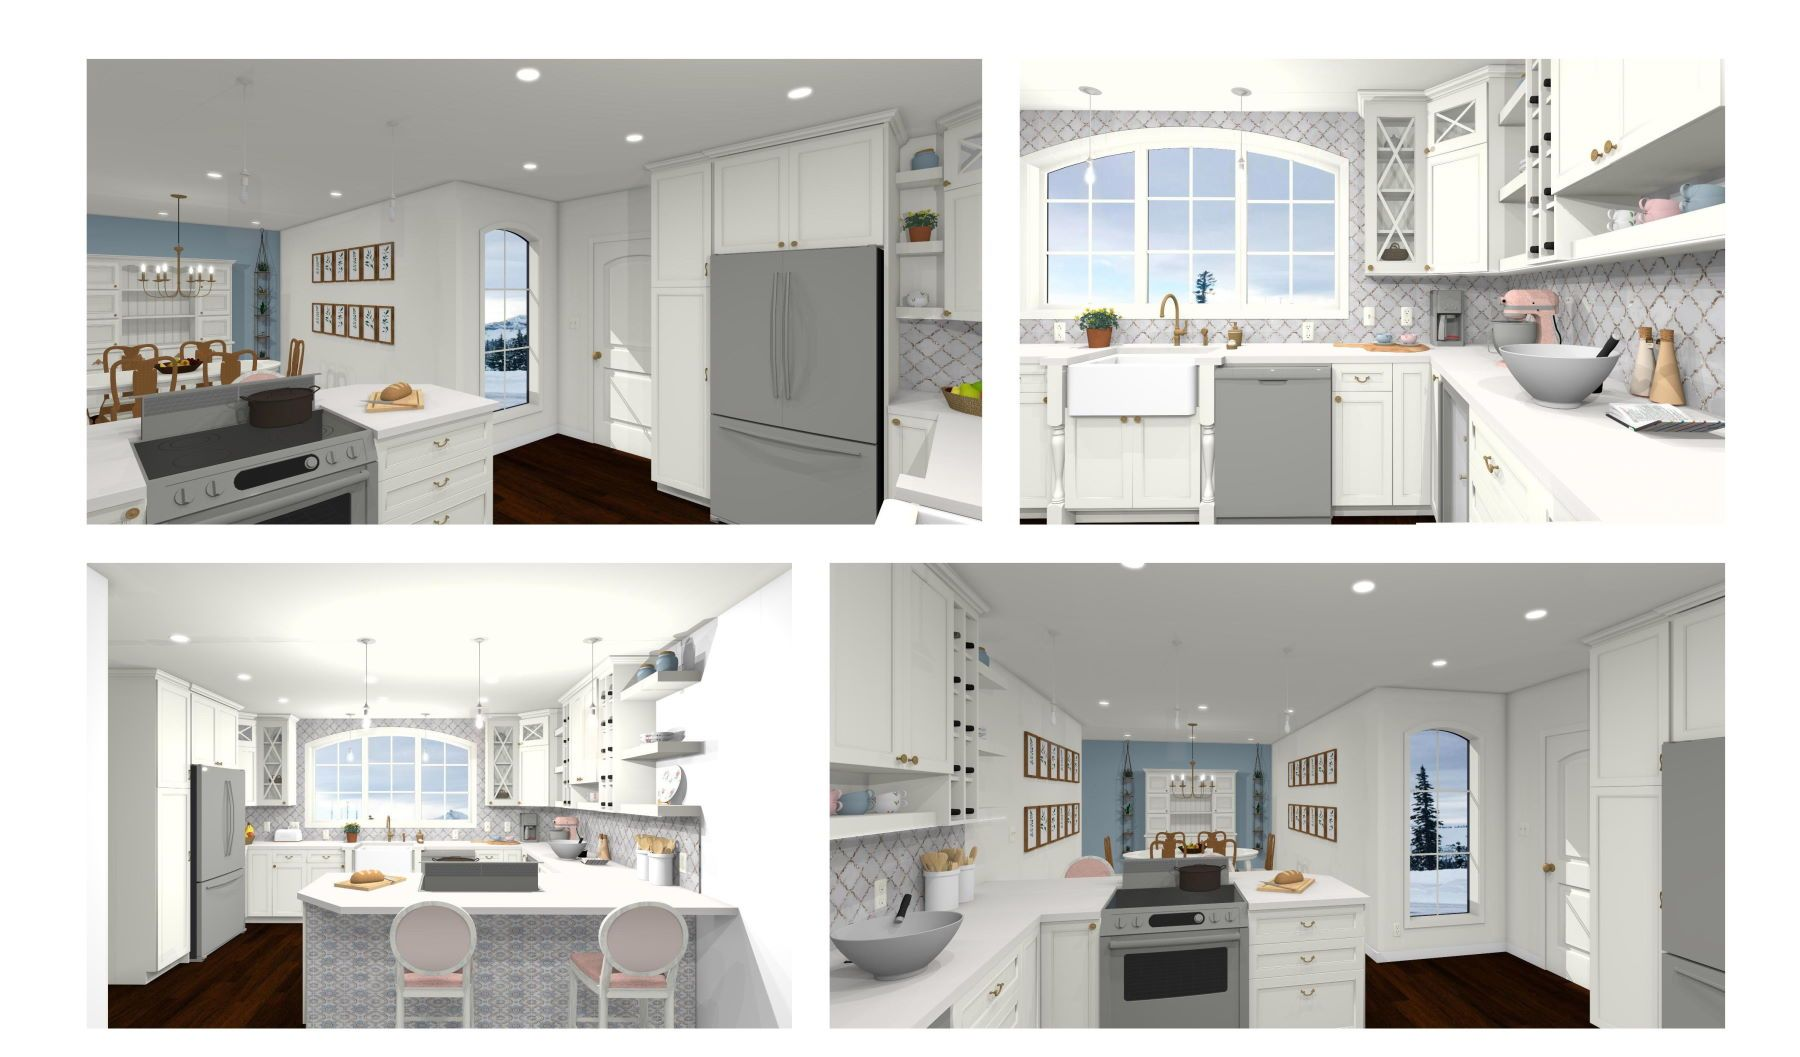 Shabby chic kitchen with large windows for natural light with gray neutral colors